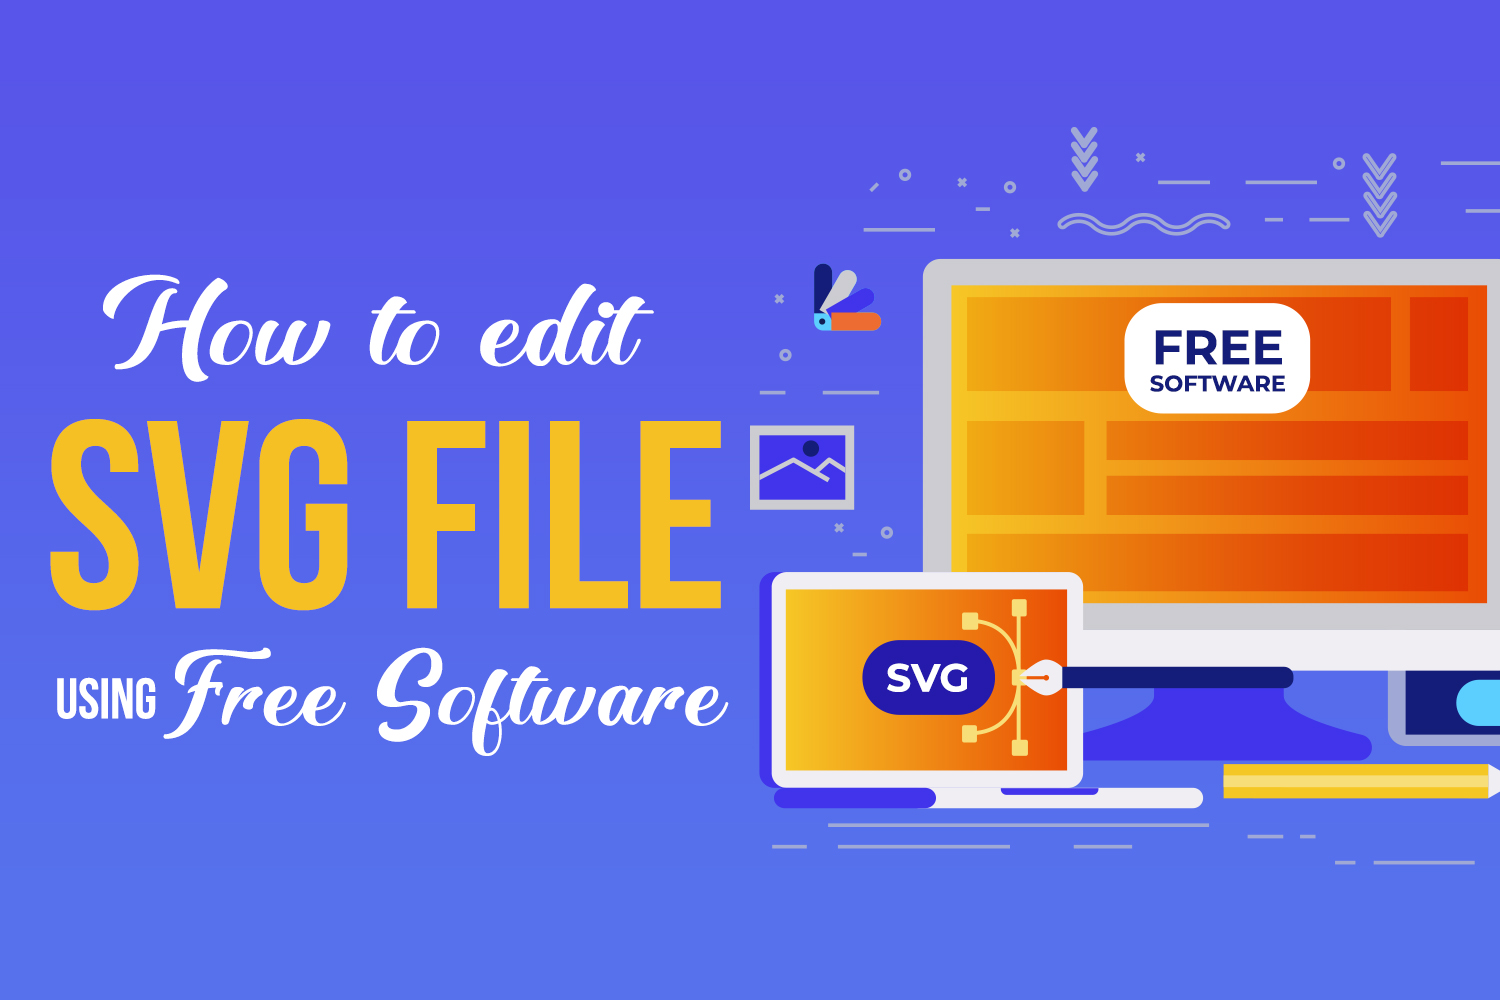 How to edit an SVG file using FREE software